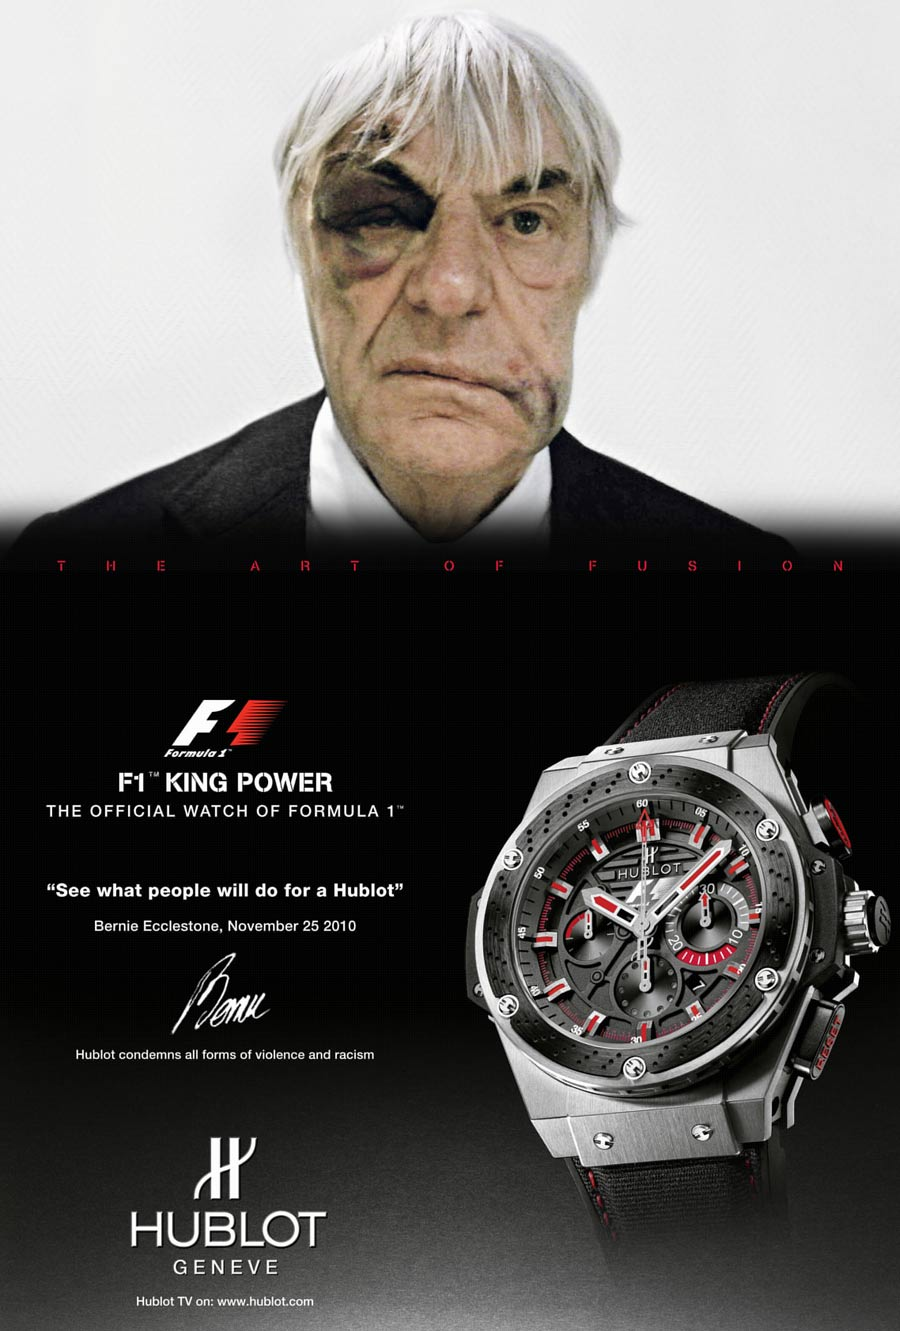 Having been mugged of his Hublot watch in London, Bernie Ecclestone agreed to appear in an advert